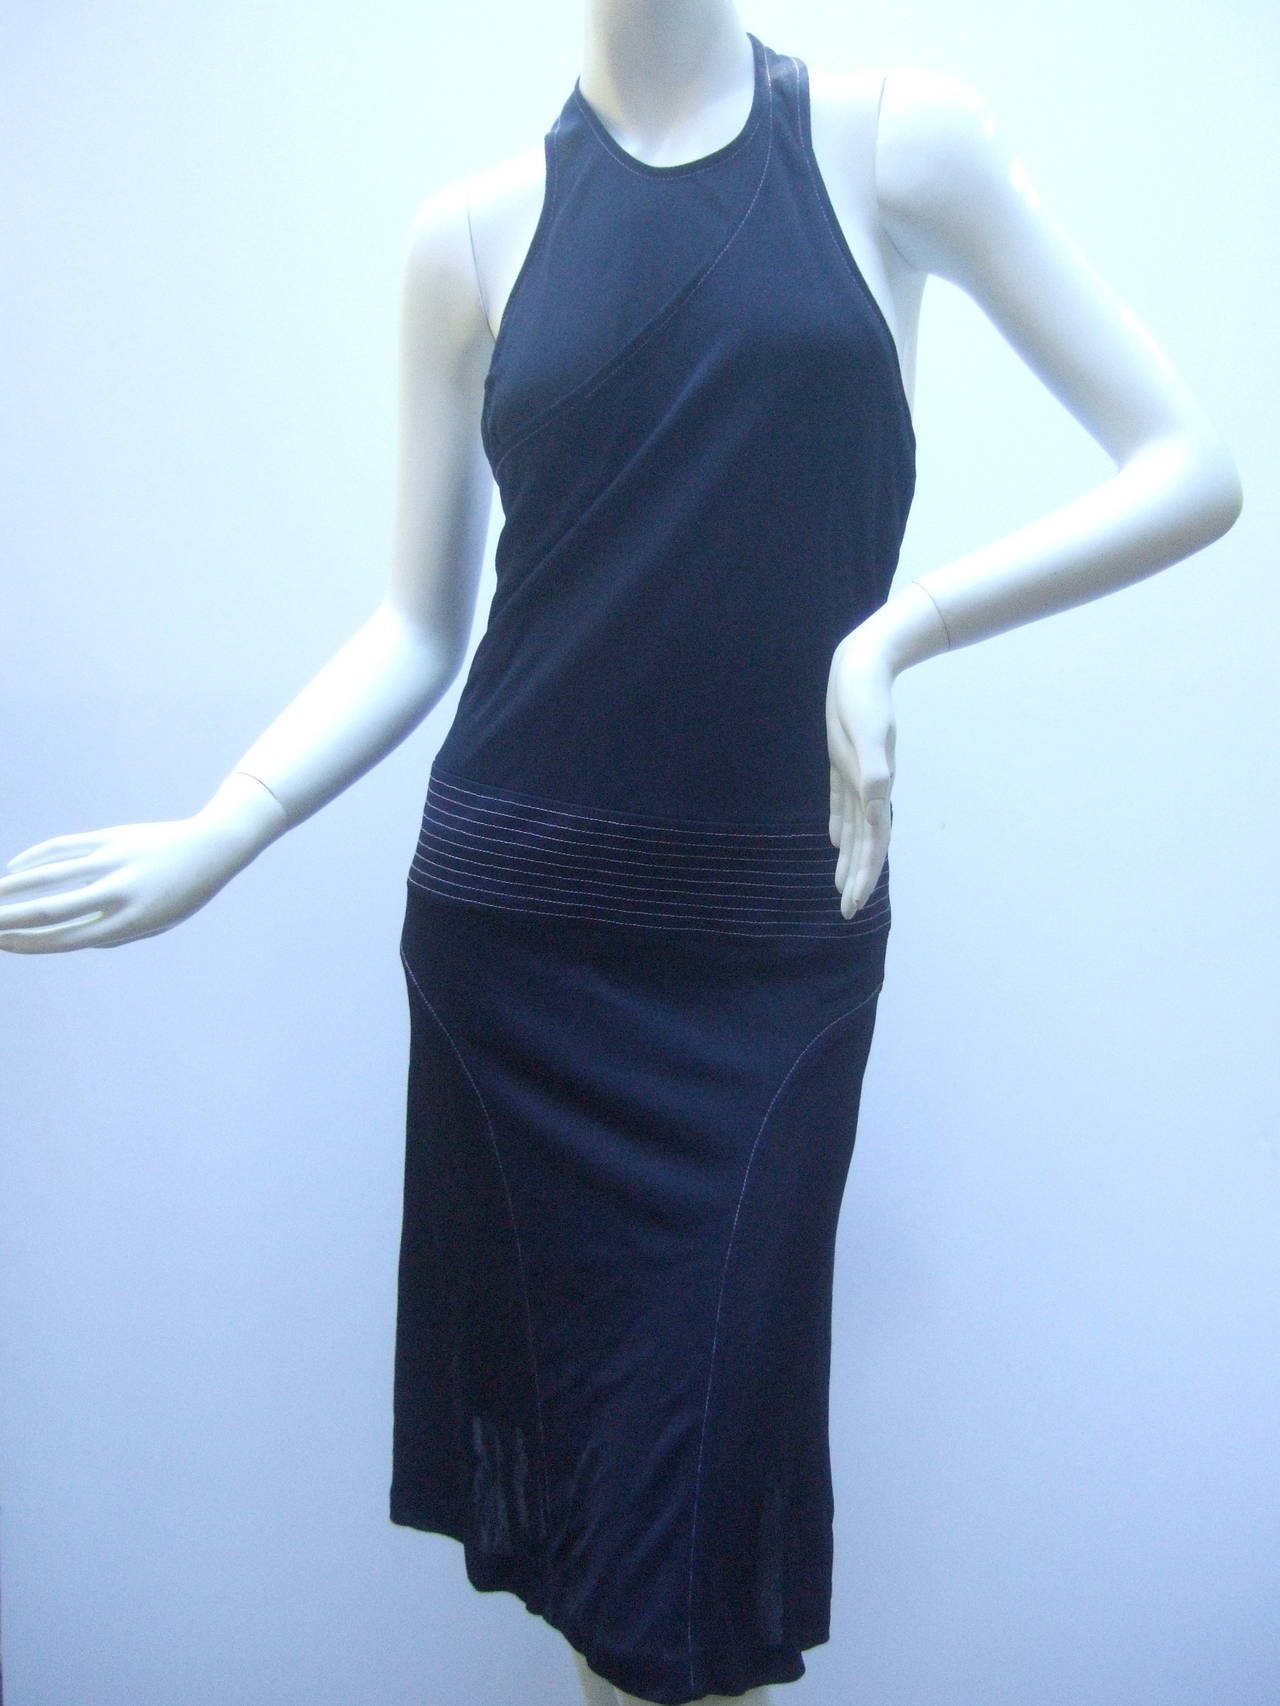 Chanel Sexy Midnight Blue Clingy Jersey Dress Size 38 In Good Condition In Santa Barbara, CA